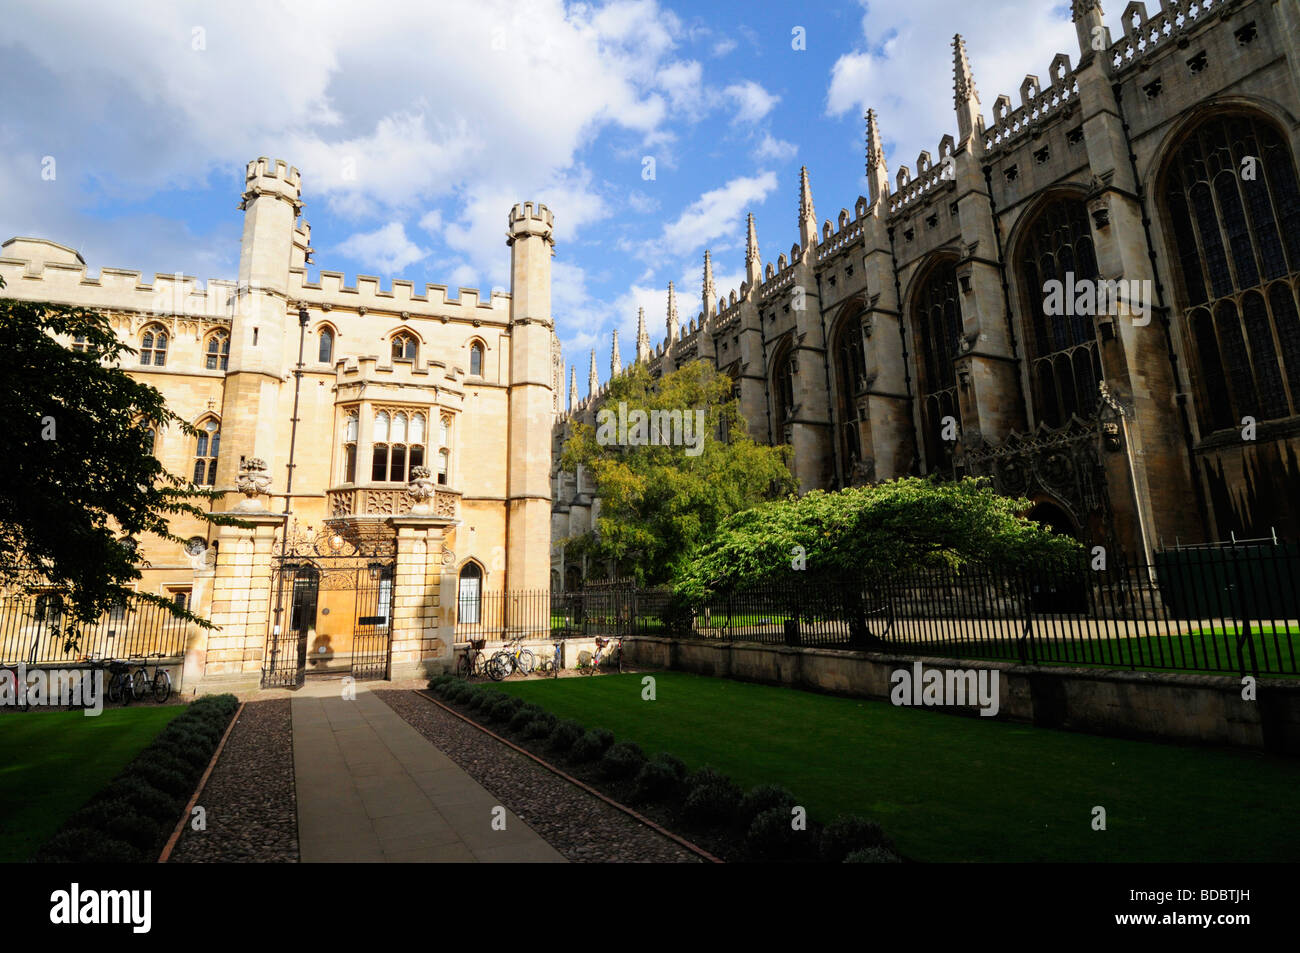 The Old Schools Offices building and Kings College Chapel, Cambridge England UK - Stock Image